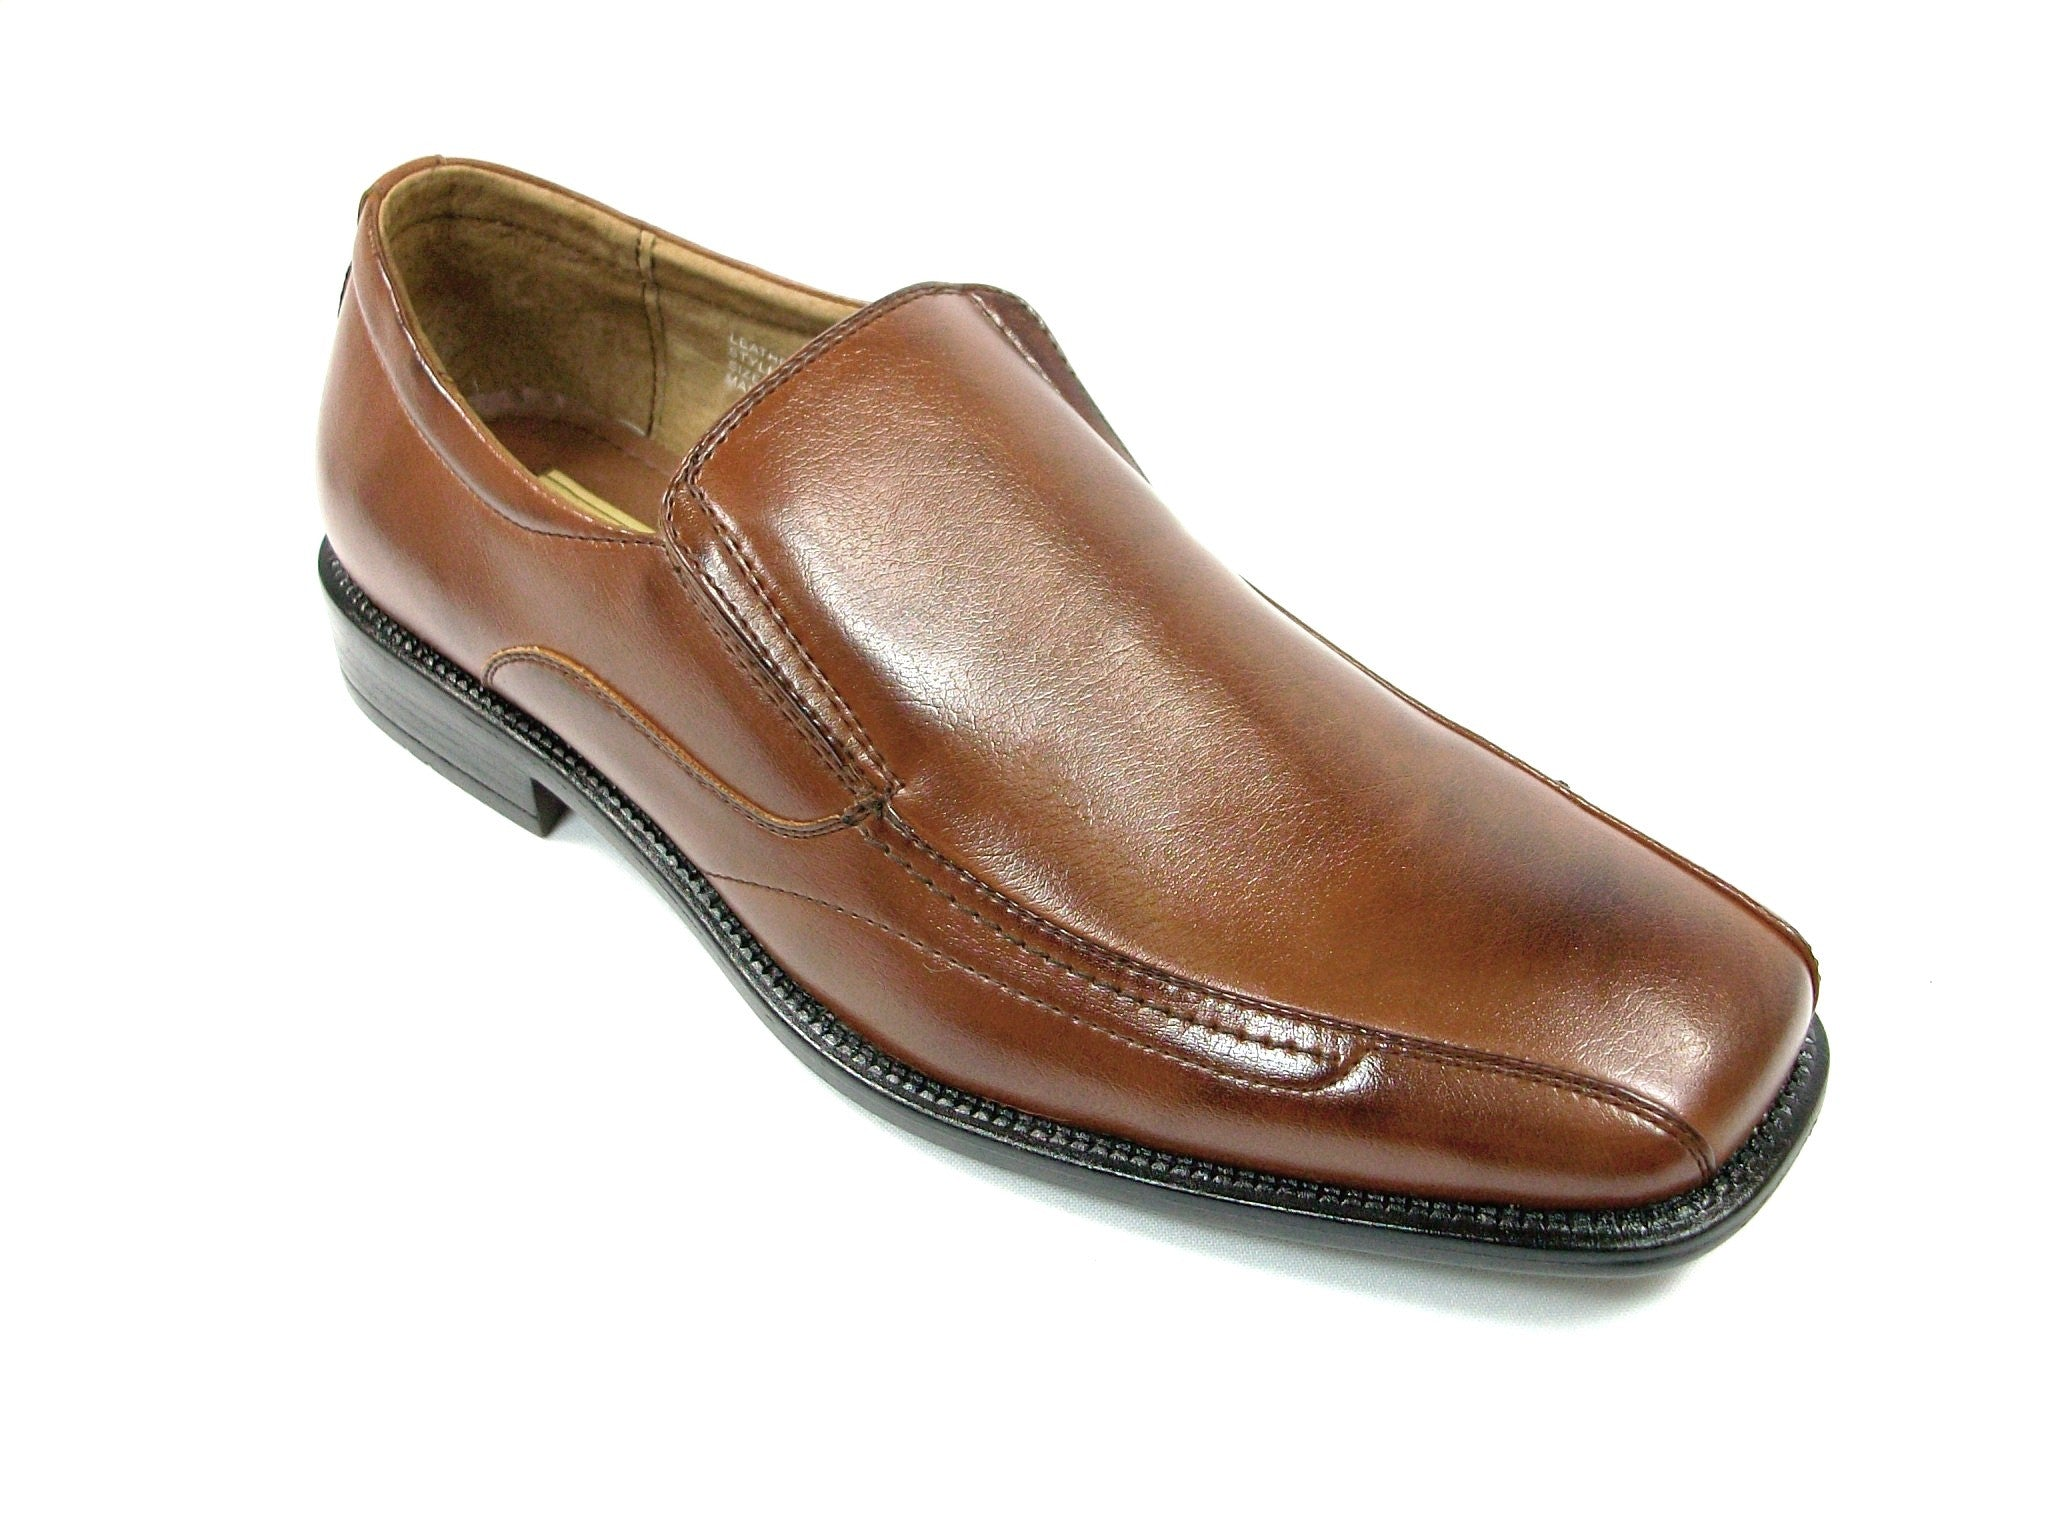 8b5fde0acf7 Mens Delli Aldo Classic Casual Dress Loafers Shoes 16062 Brown-86 - Jazame